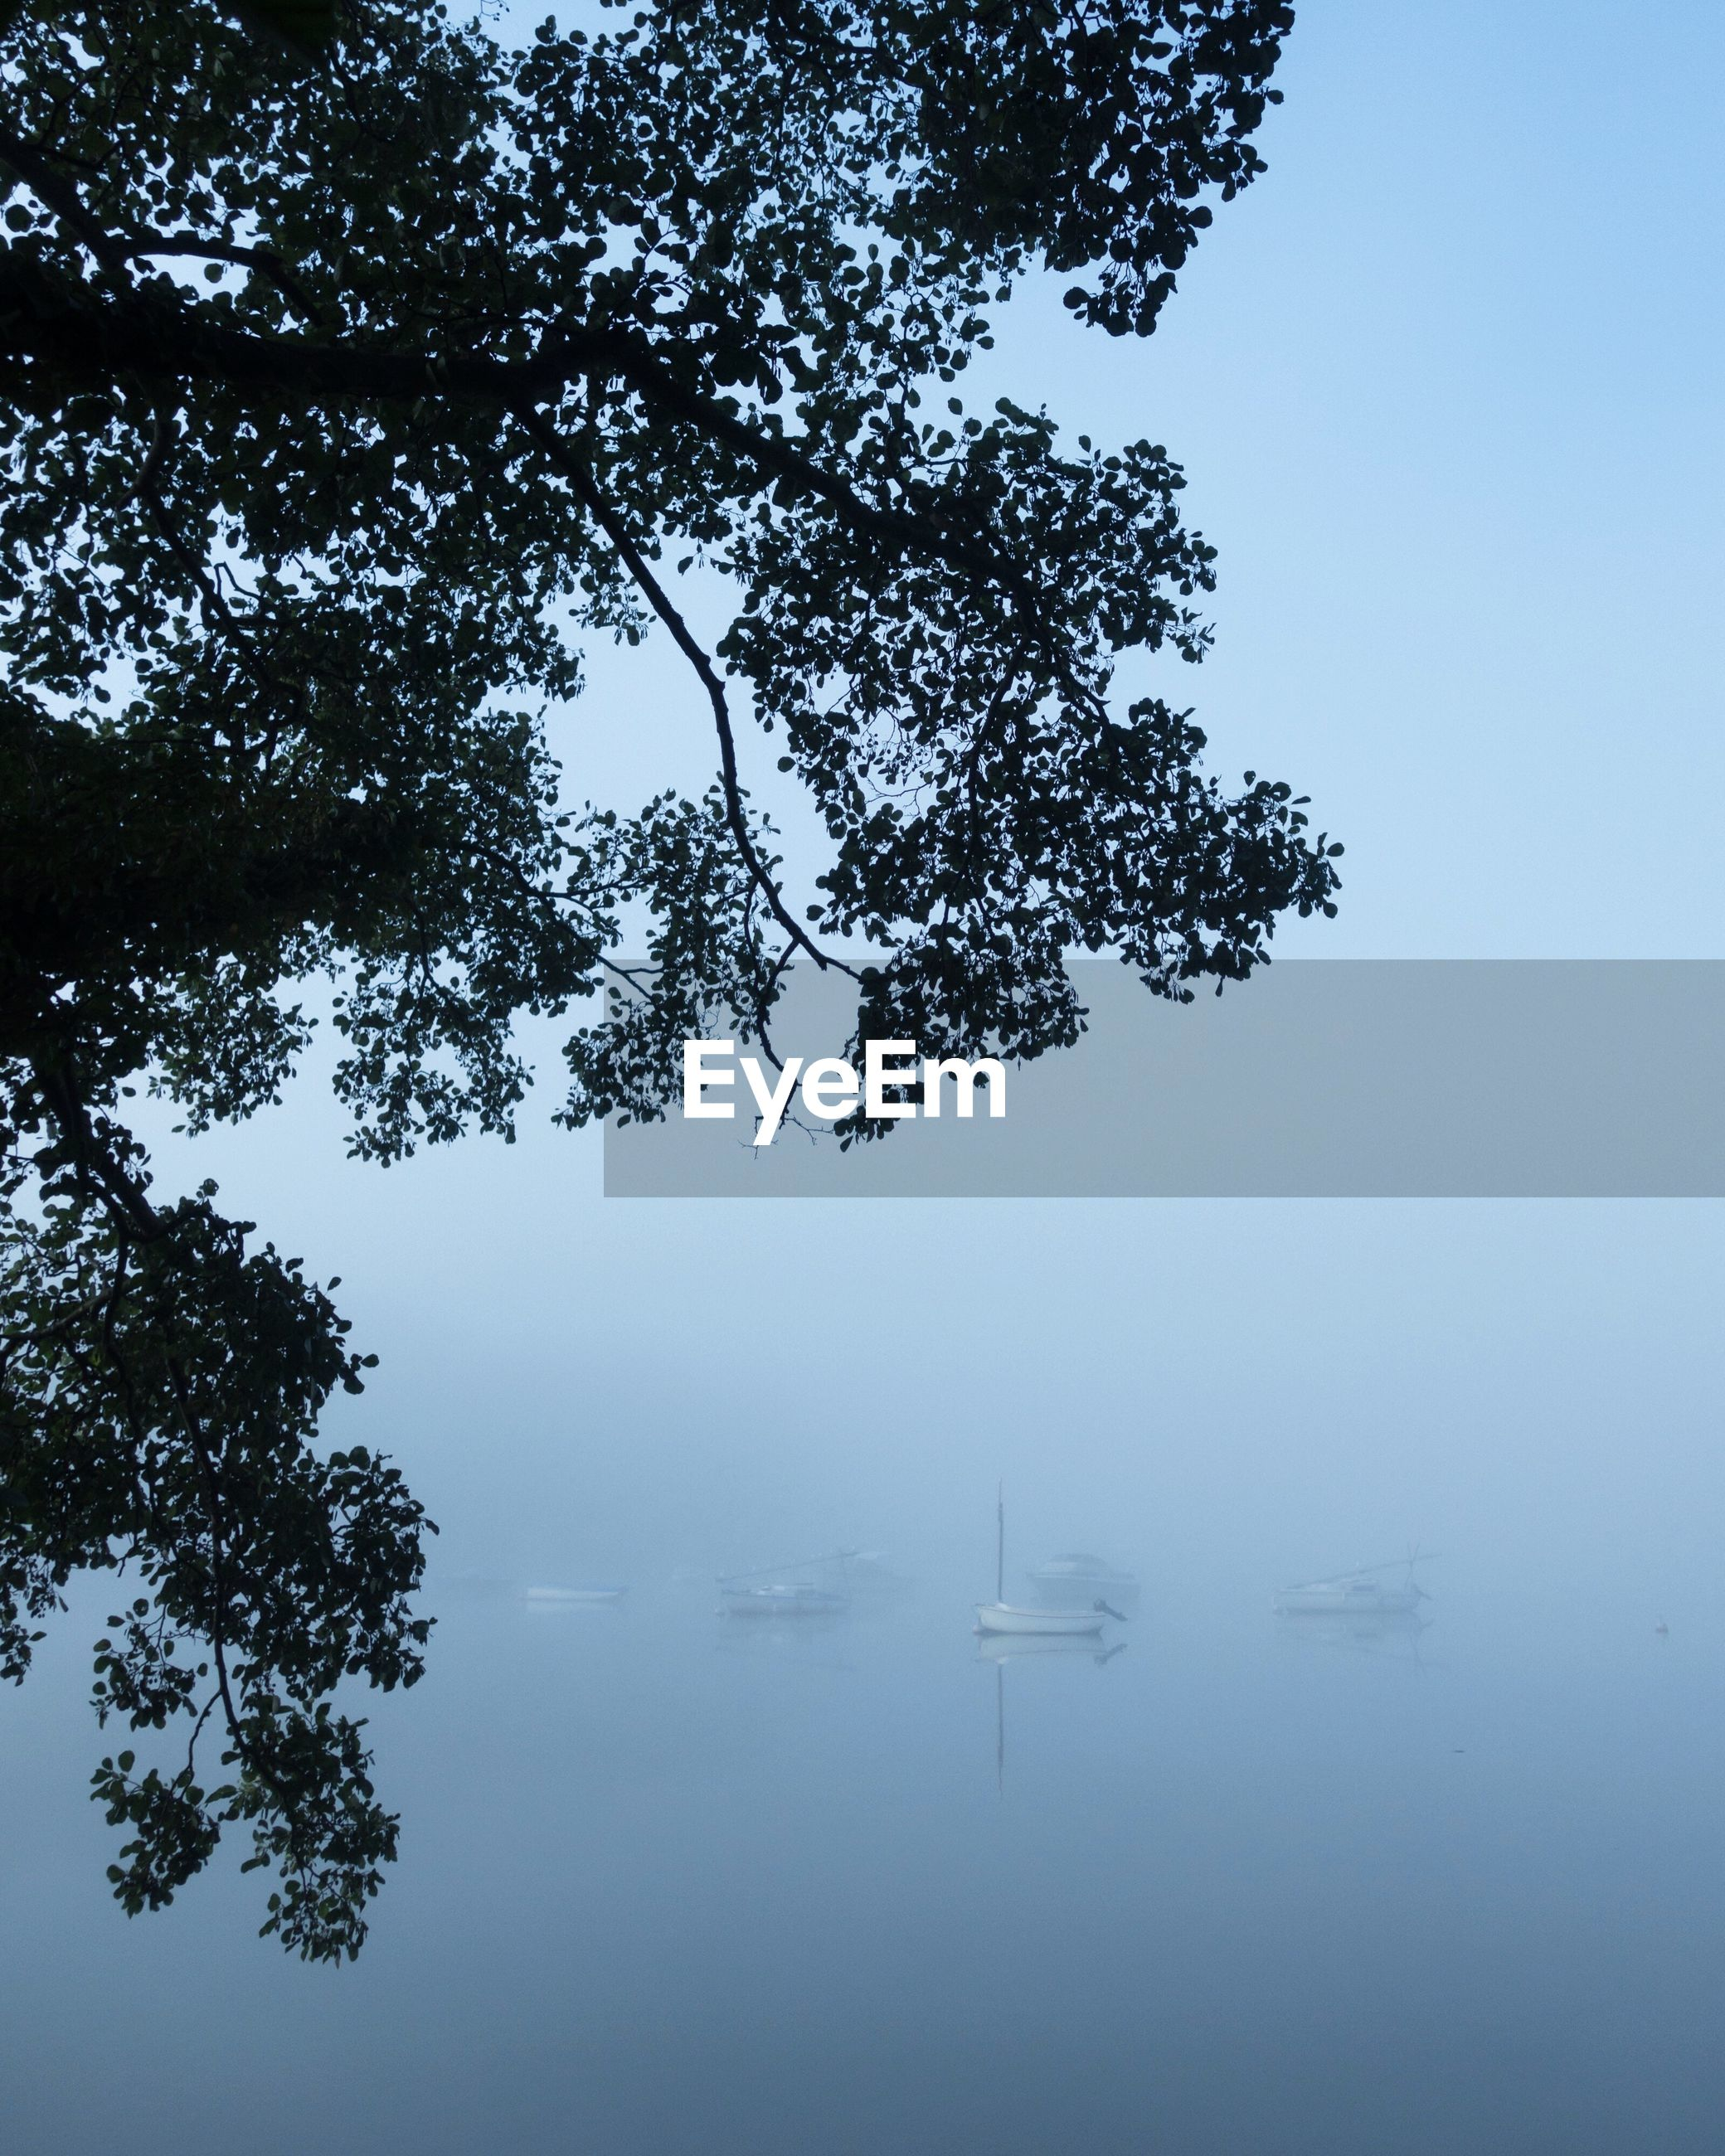 water, tree, tranquil scene, nature, beauty in nature, tranquility, lake, reflection, outdoors, fog, no people, scenics, nautical vessel, day, branch, sky